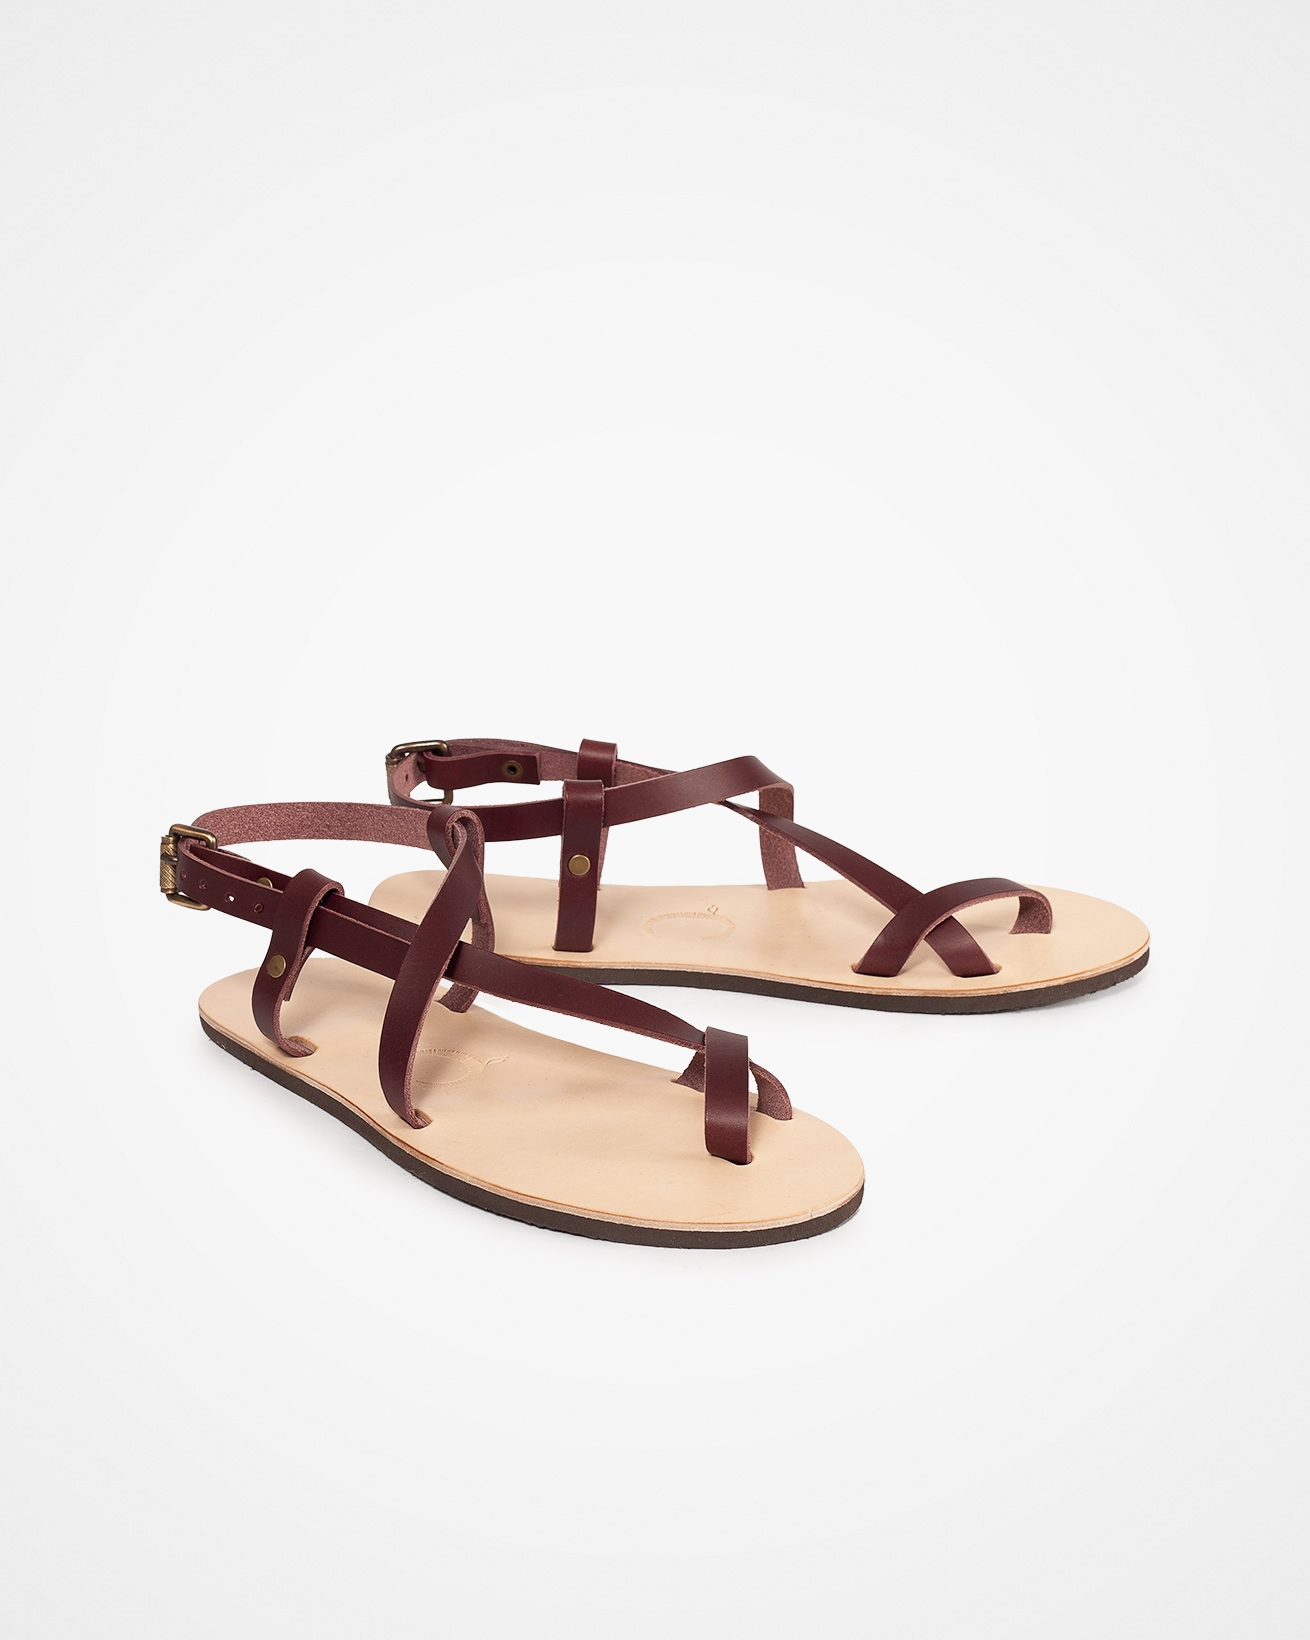 7704_celtic-toe-ring-crossover-sandal_sloeberry_pair.jpg